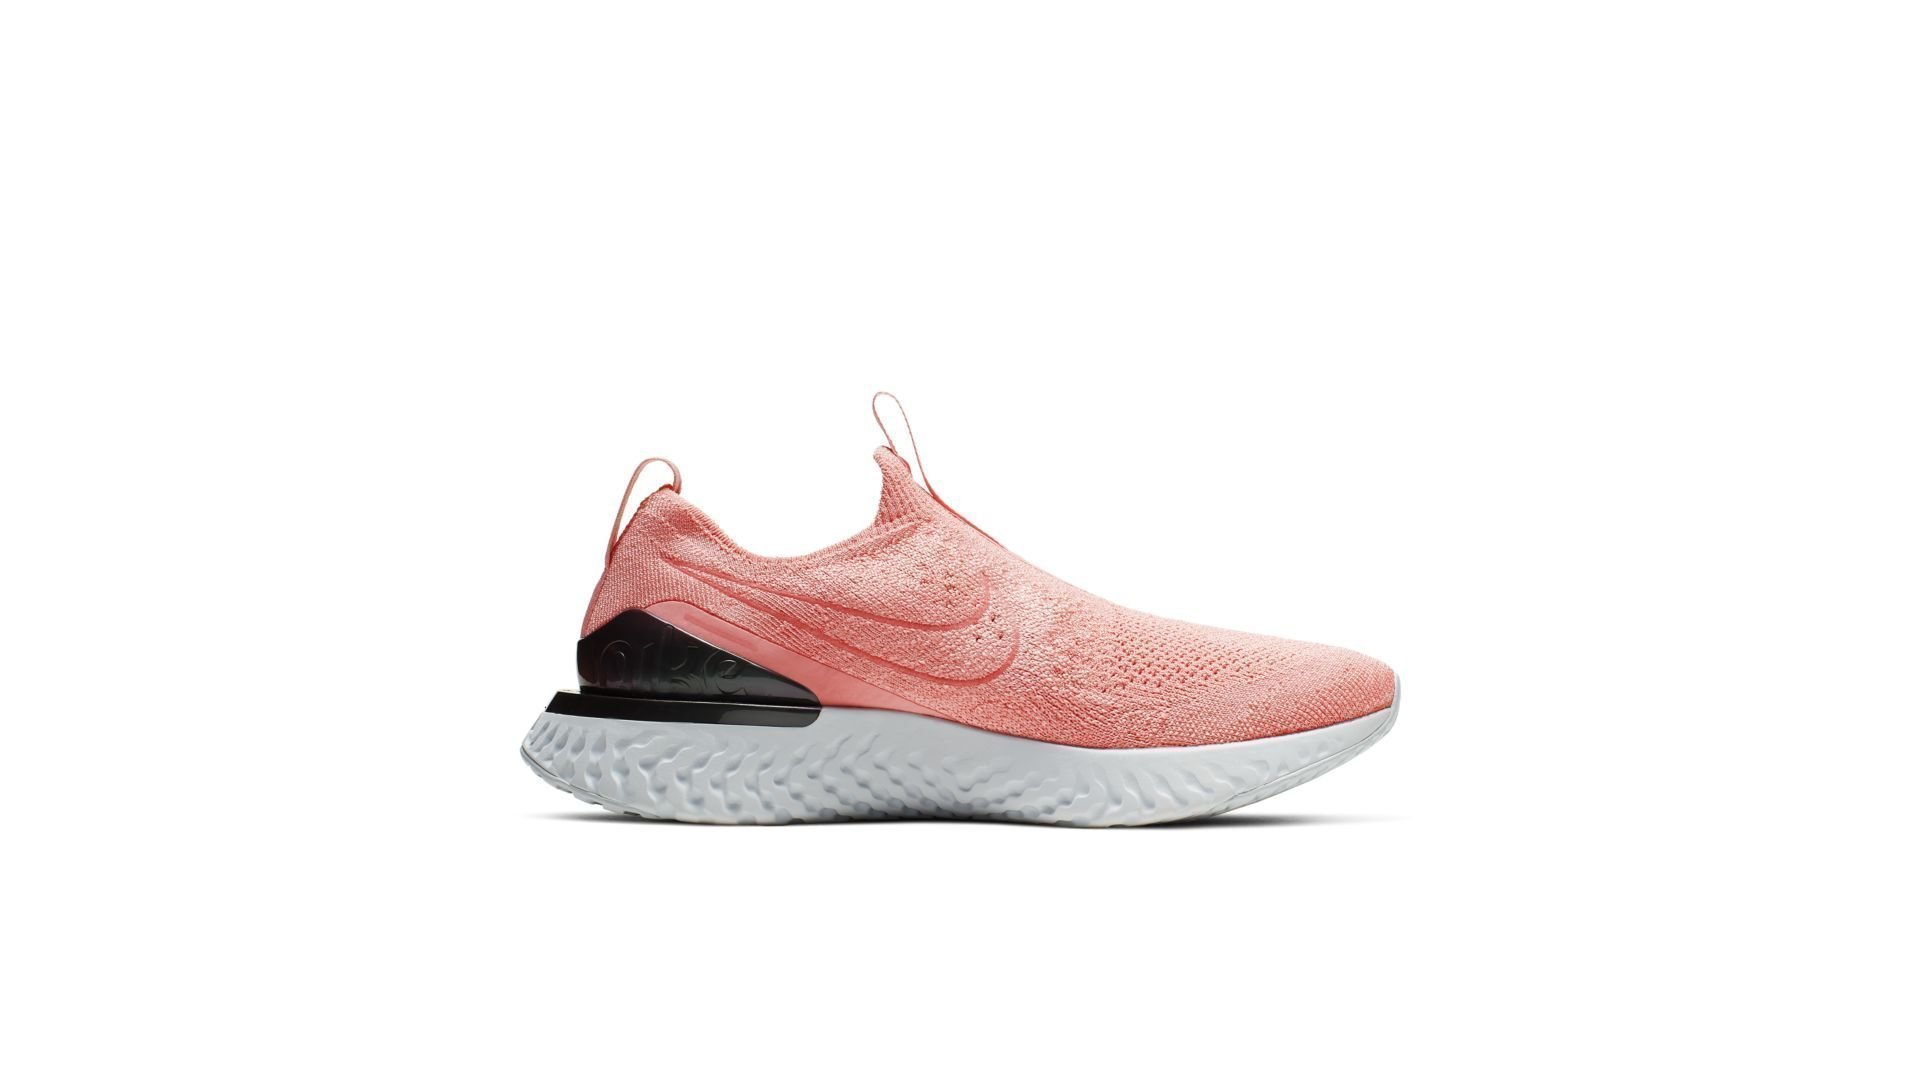 Nike Epic Phantom React Flyknit Bright Mango (W) (BV0415-800)